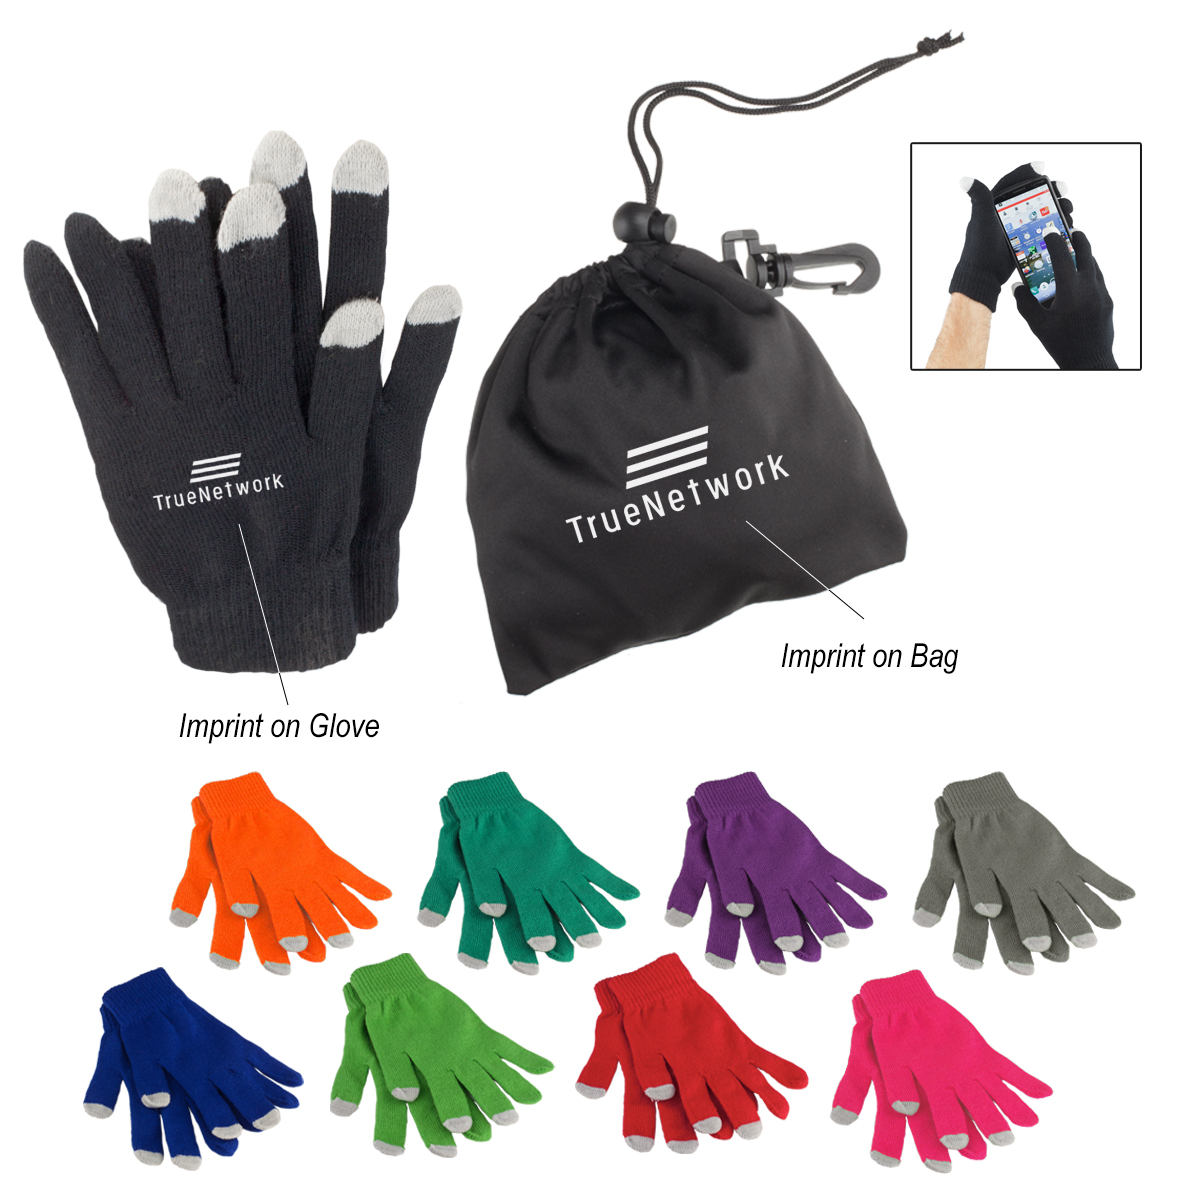 514821108-816 - Touch Screen Gloves In Pouch - thumbnail